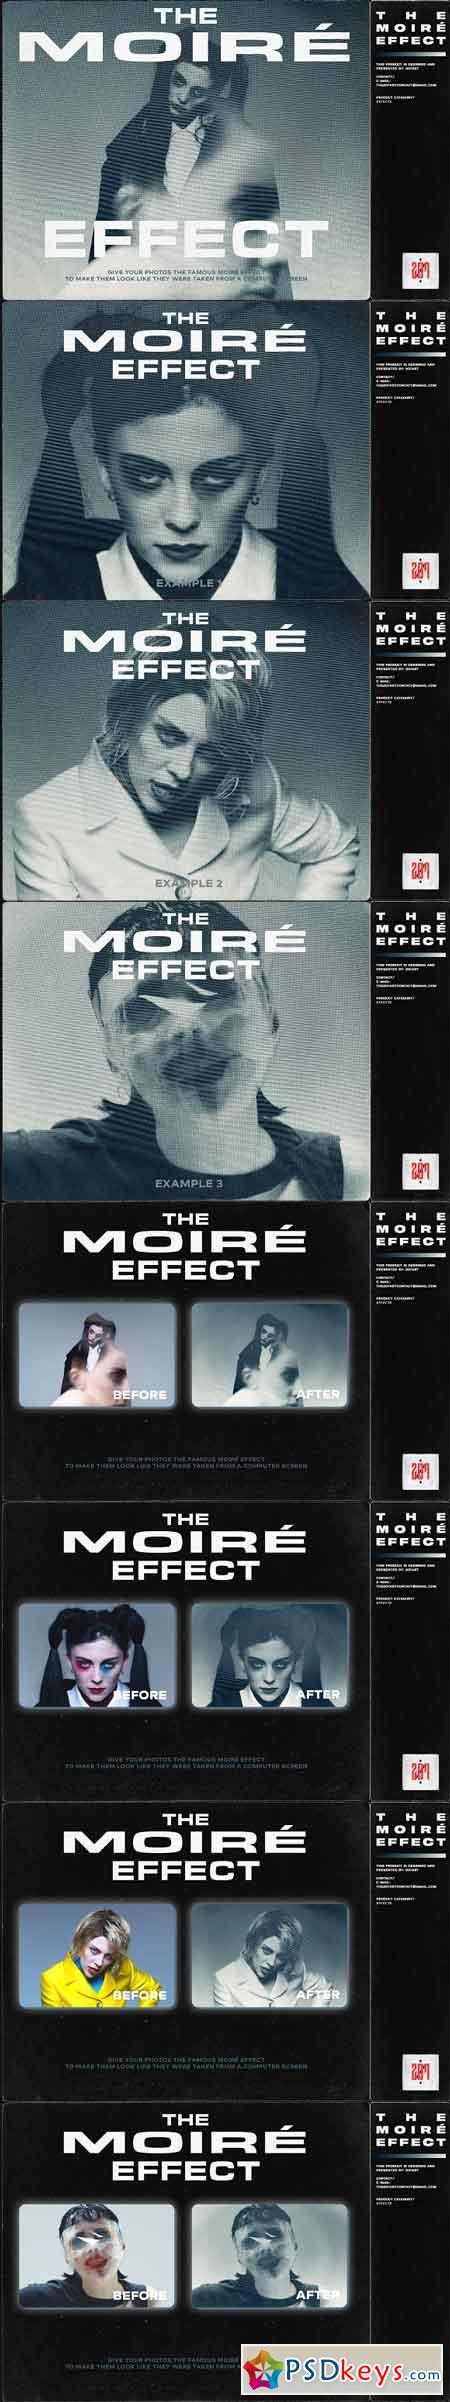 THE MOIRE EFFECT BY 207ART 3113861